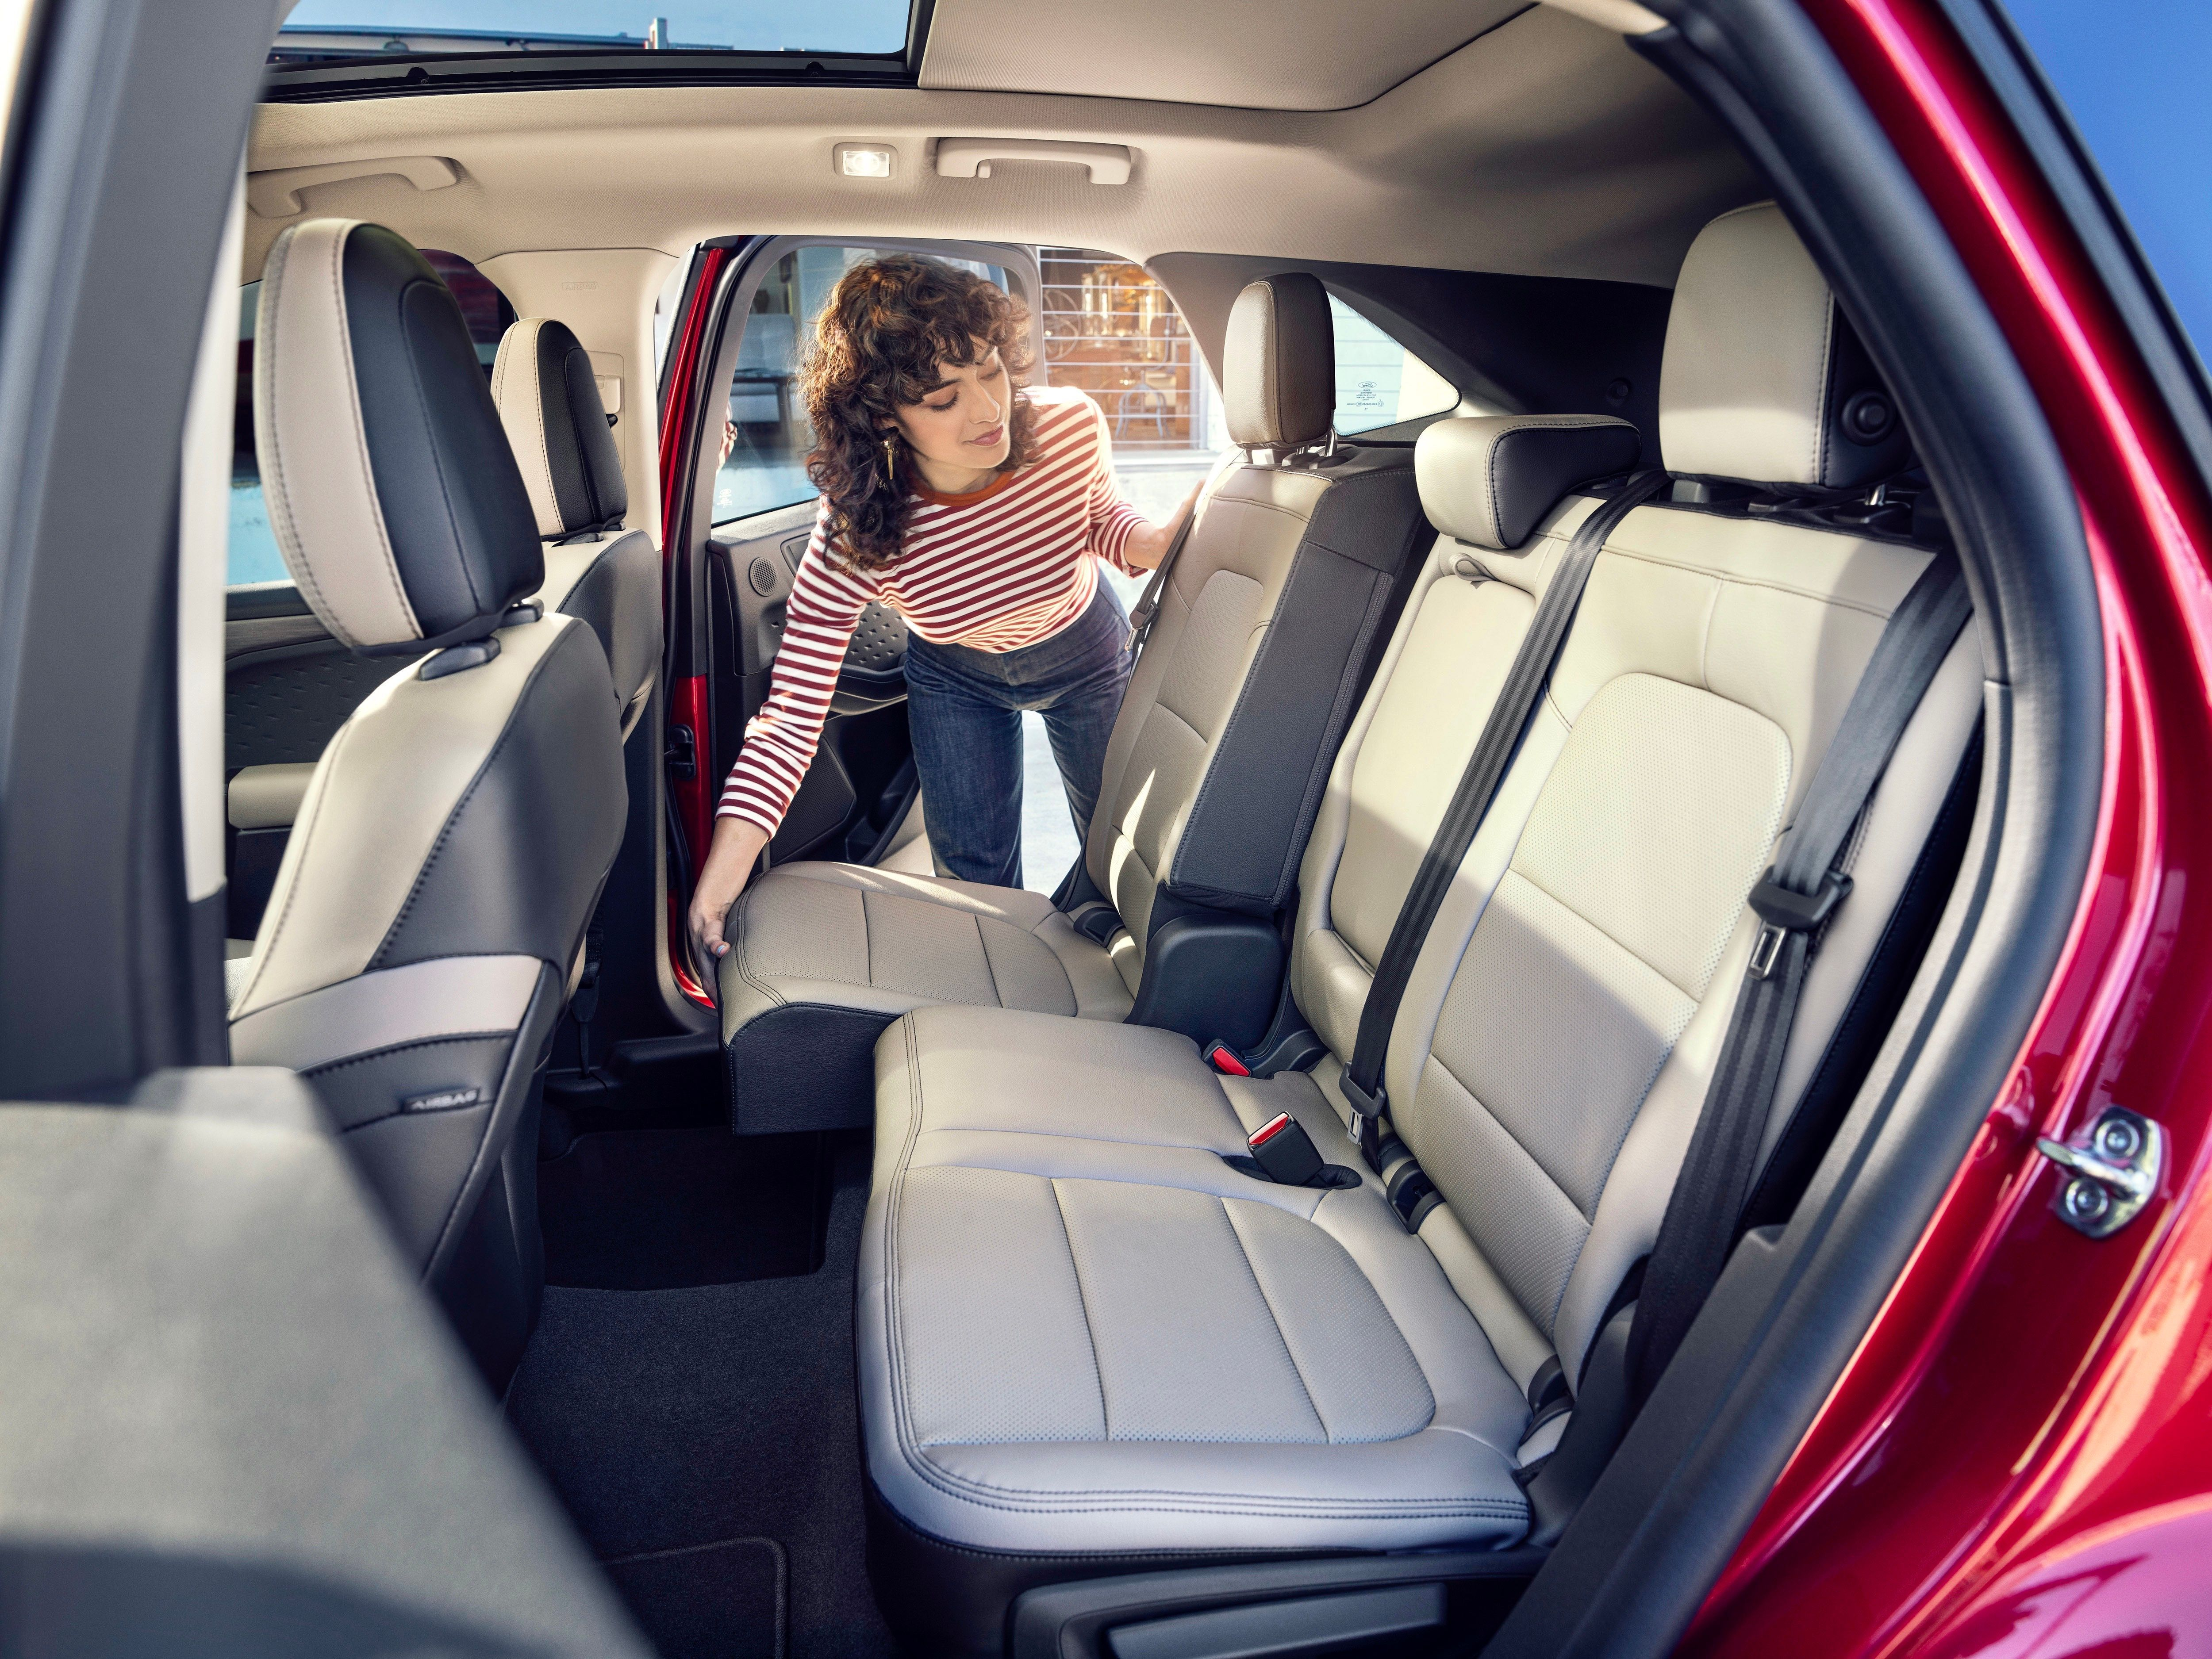 2020 Ford Escape Second Row Legroom And 37 5 Cubic Feet Of Cargo Space Fordescape2020 Ford2020 Billbrownford In 2020 Ford Escape New Cars For Sale Ford